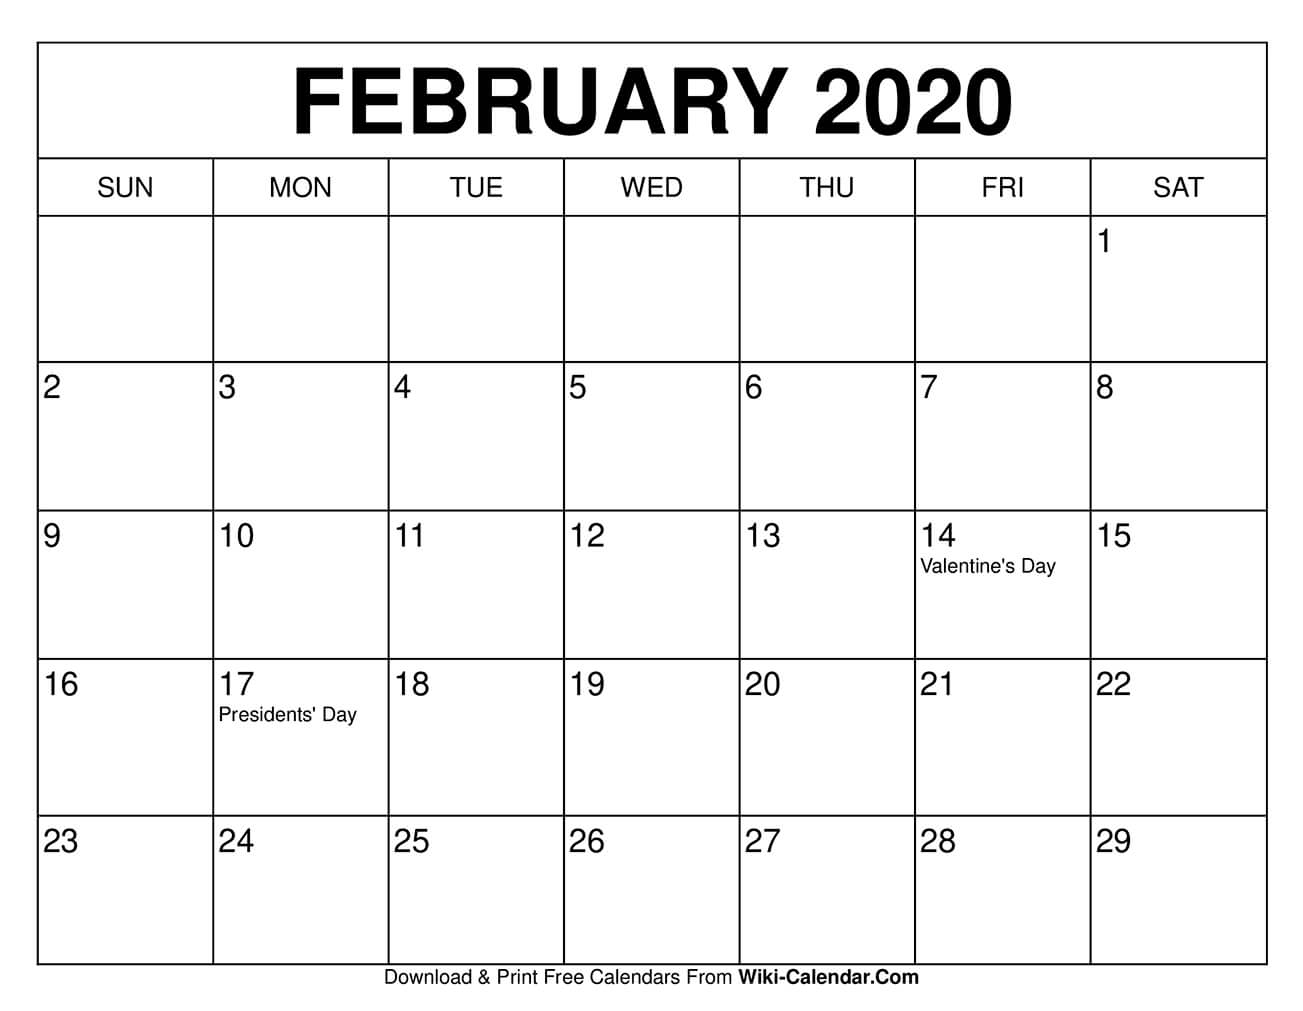 Free Printable February 2020 Calendars for 2020 Calendar That Shows Only Monday Through Friday